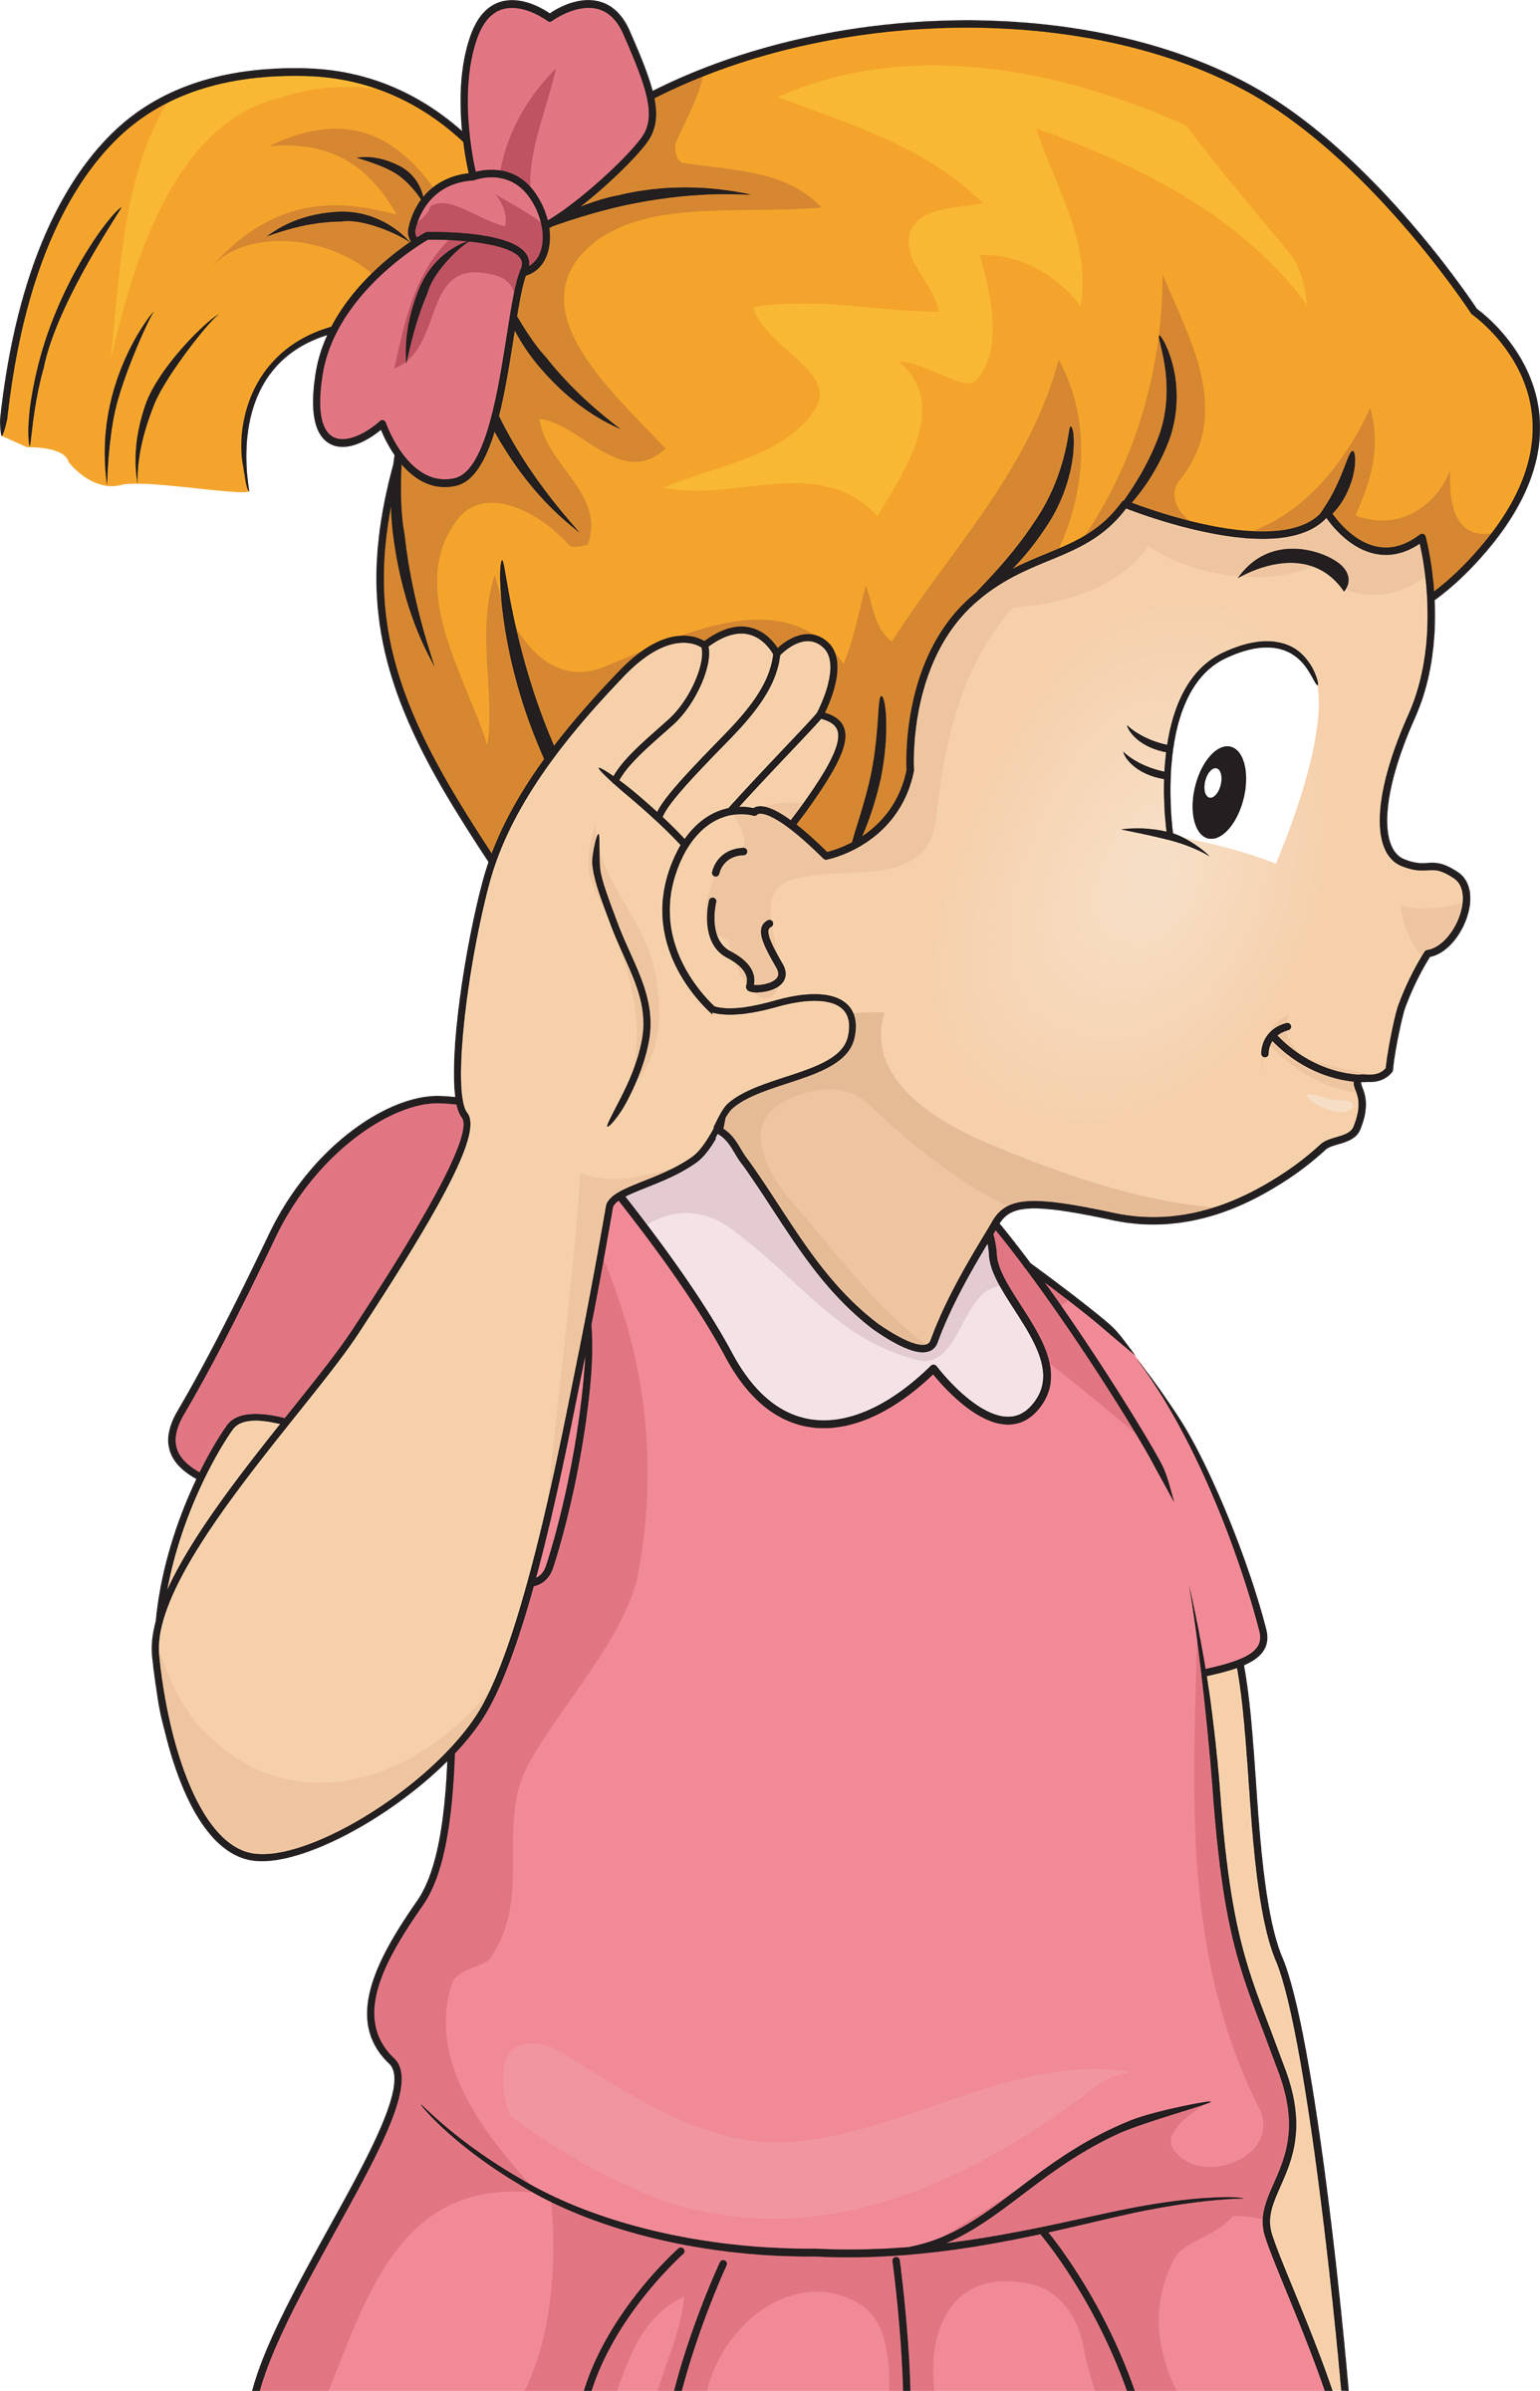 Do You Have Your Listening Ears On